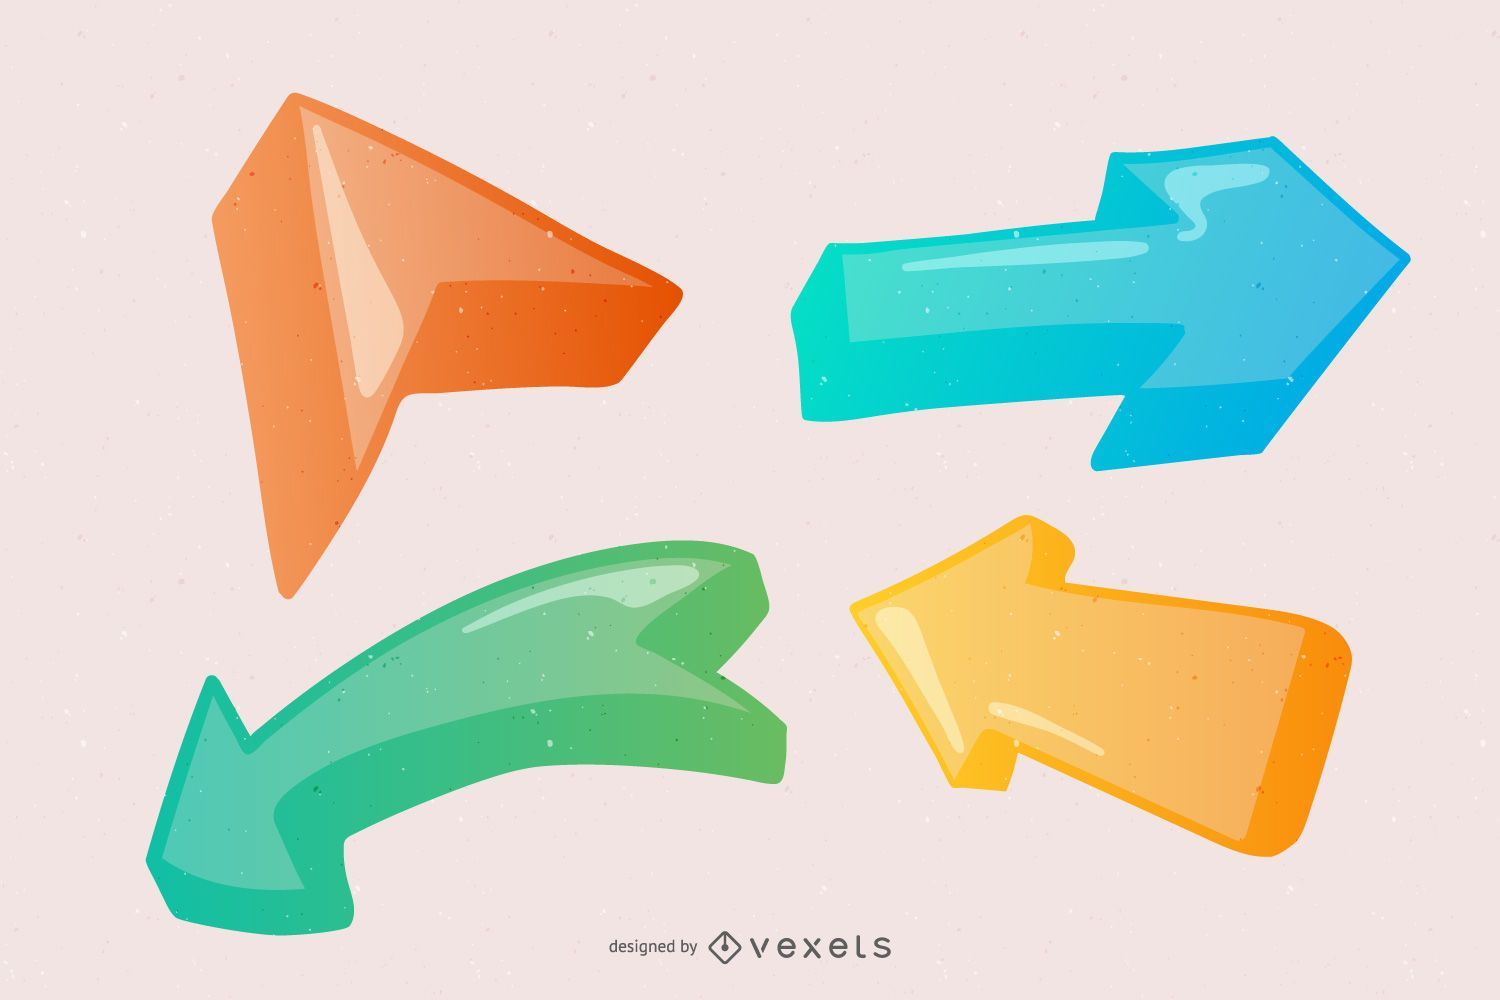 Shiny Decorated 3D Arrow Pack